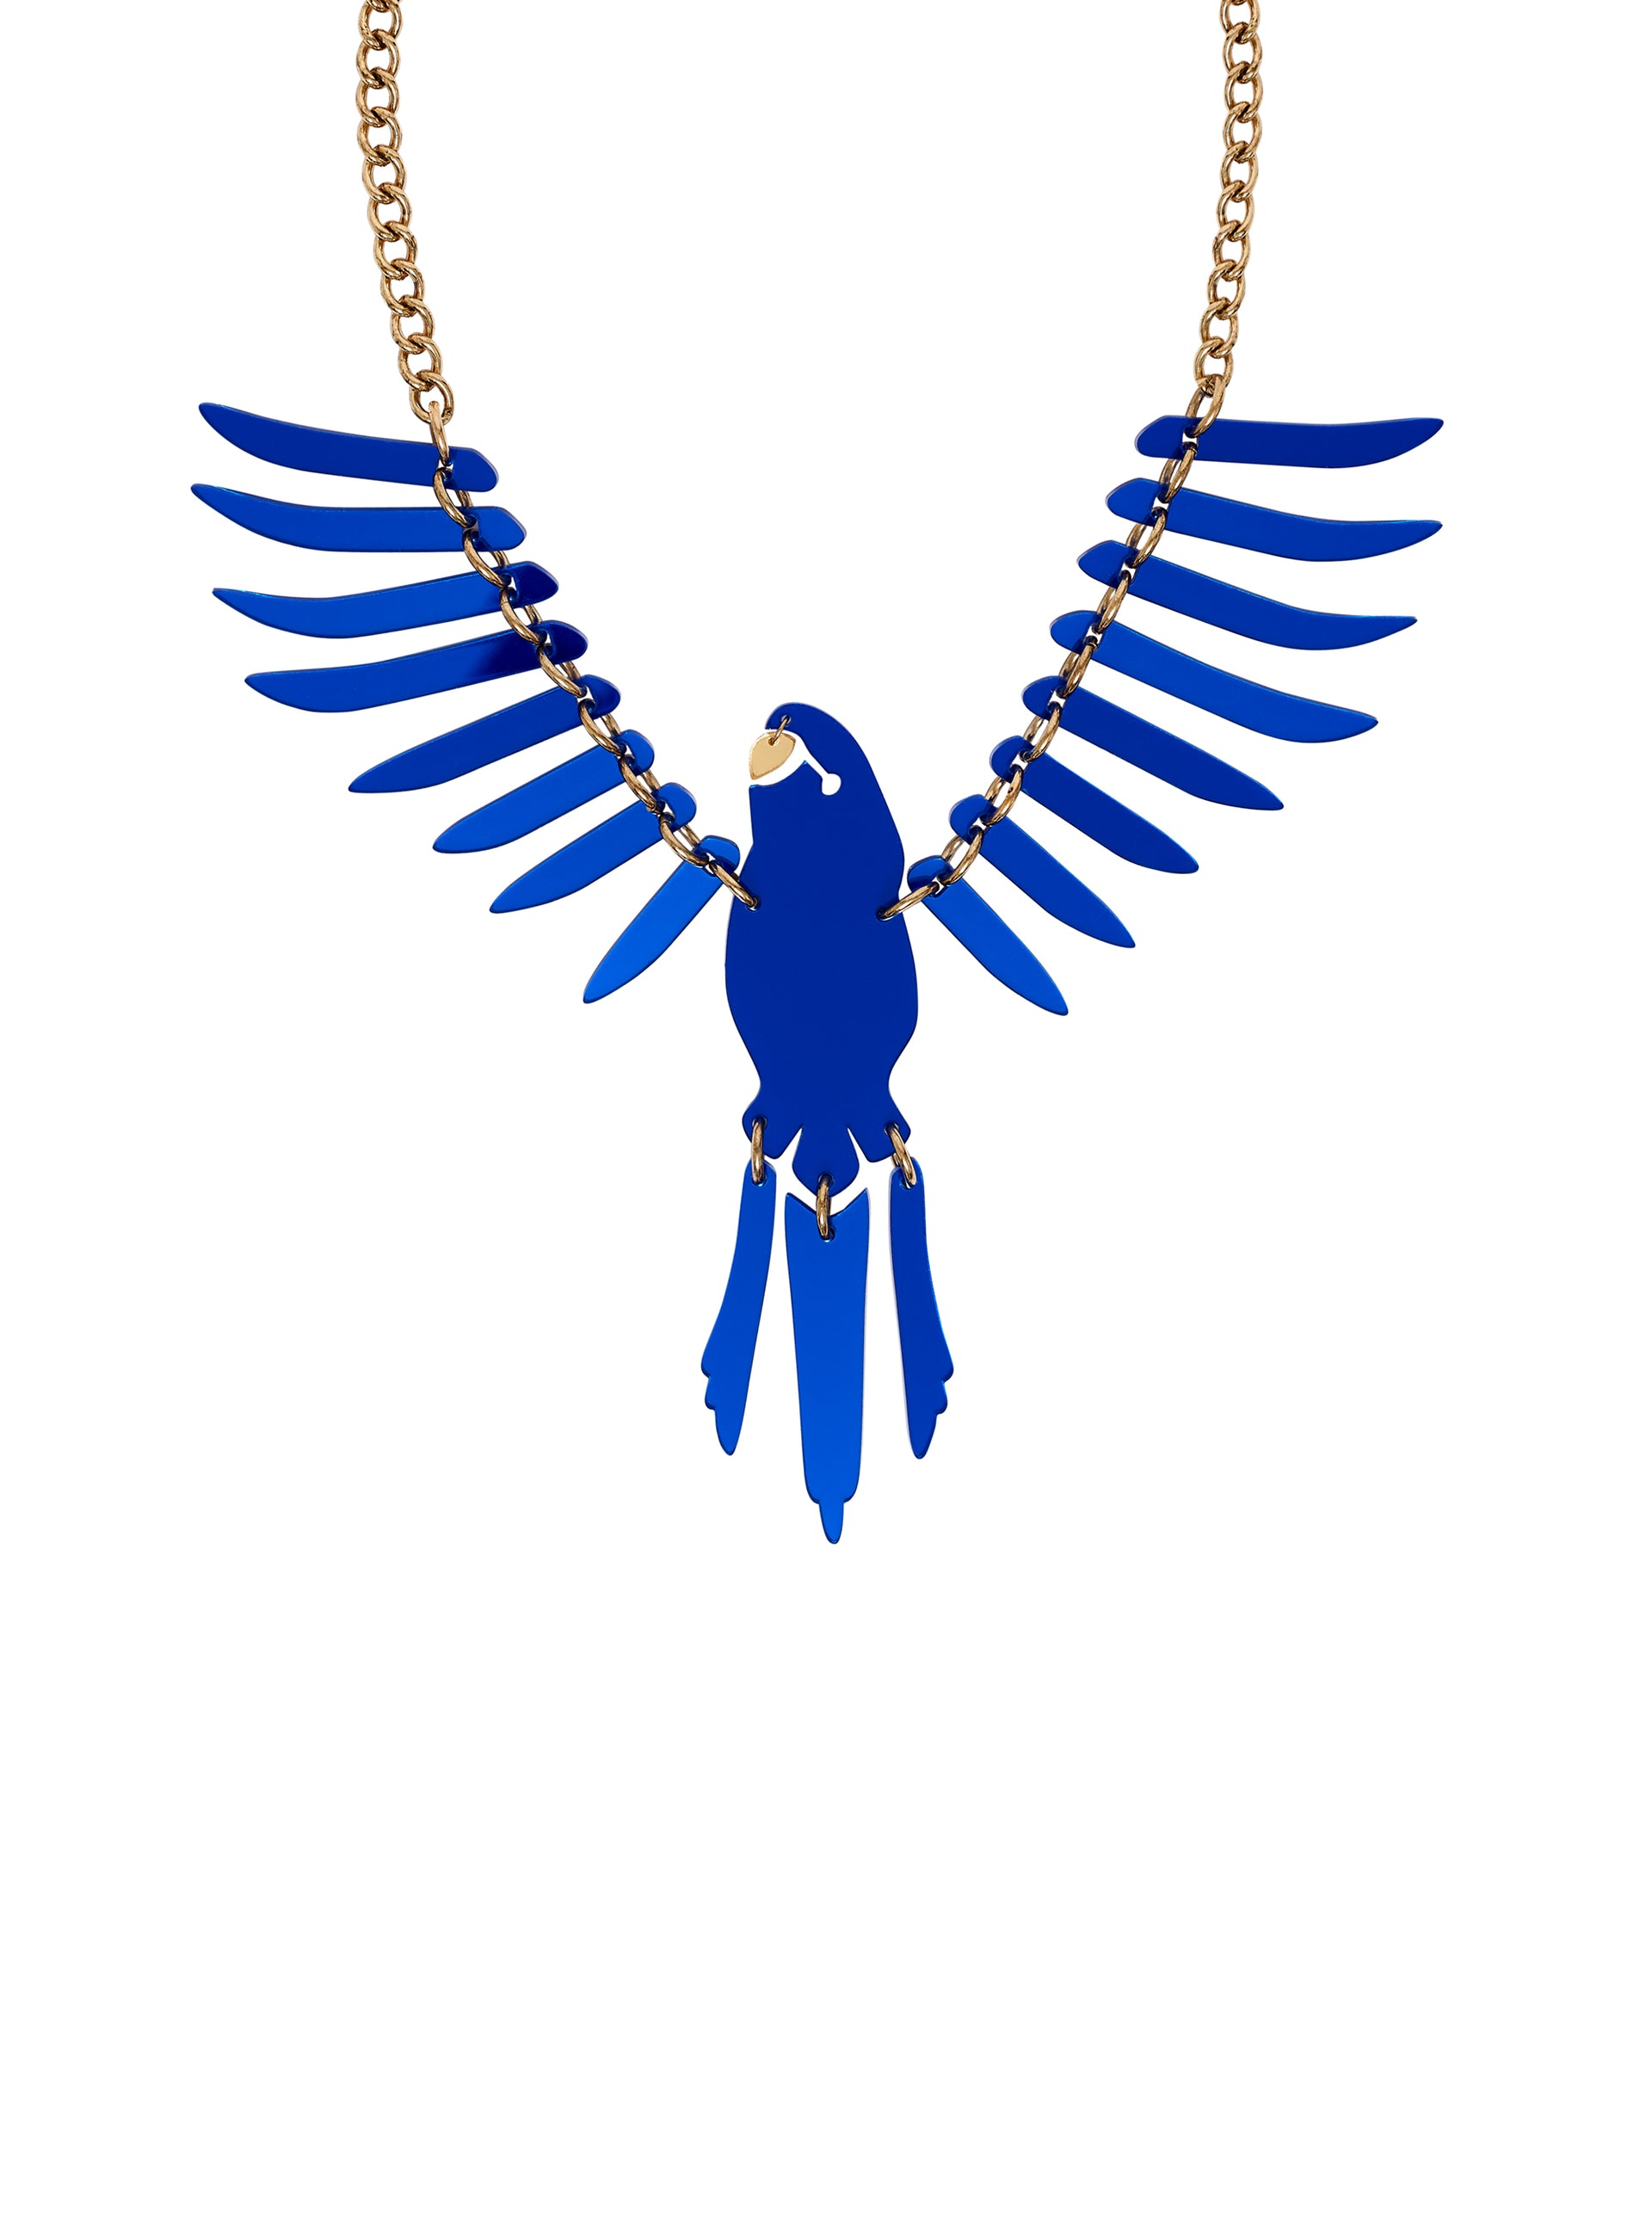 Parakeet-Large-Necklace-Mirror Blue